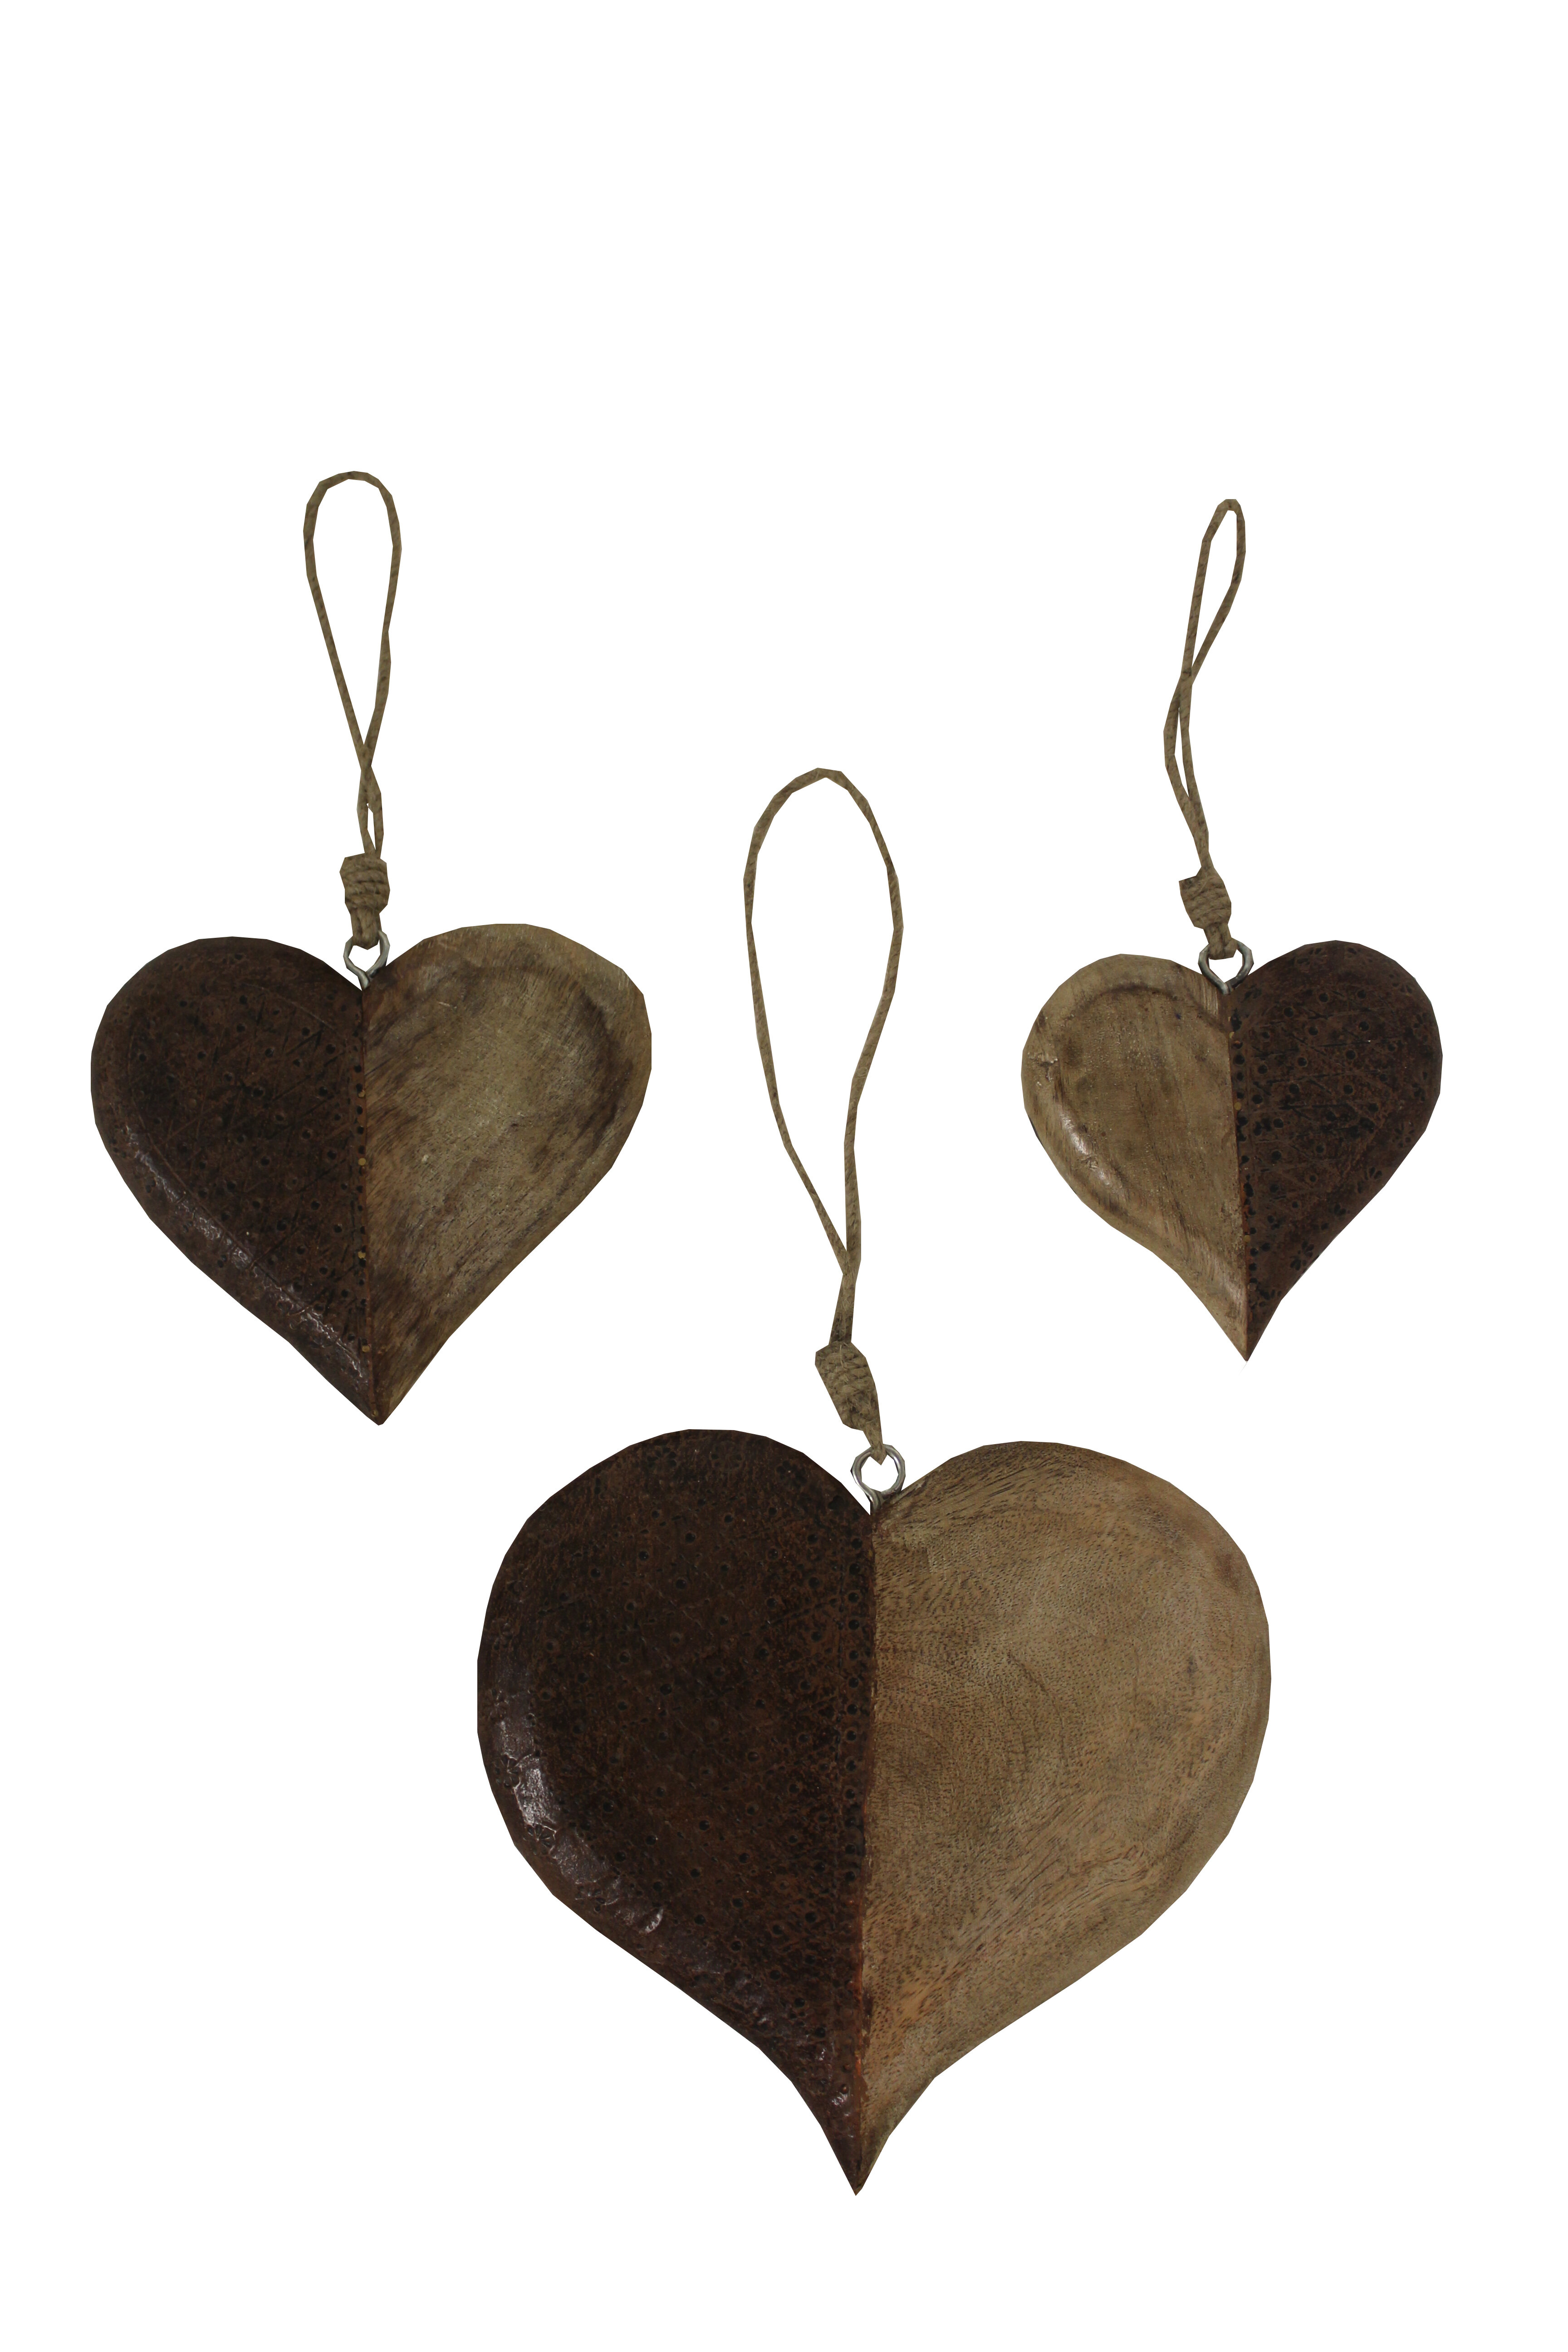 3 Piece Decorative Wood And Metal Hanging Heart Wall Decor Set